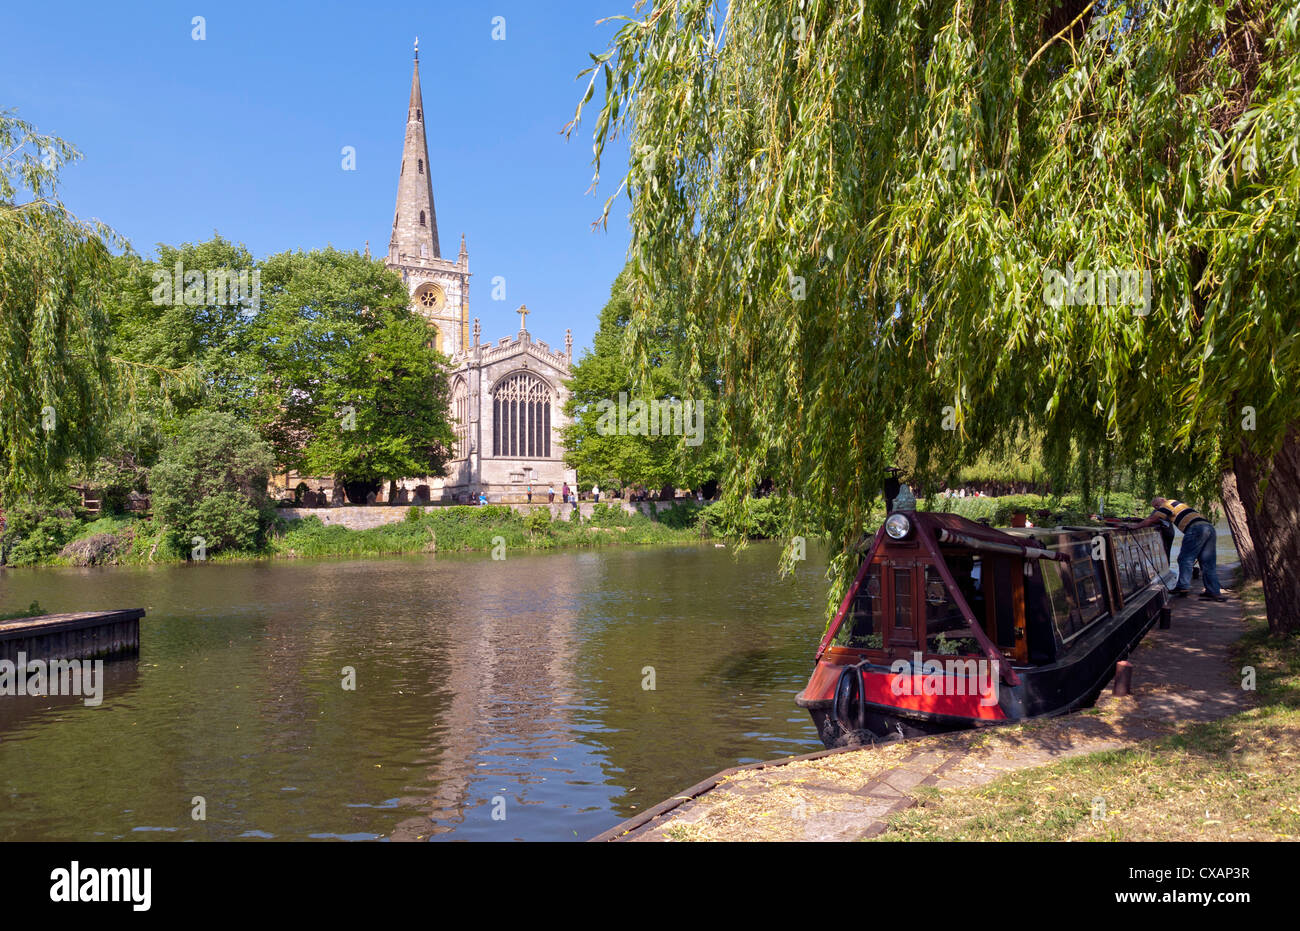 Holy Trinity Church, where William Shakespeare was baptised and buried, Stratford-upon-Avon, Warwickshire, England - Stock Image